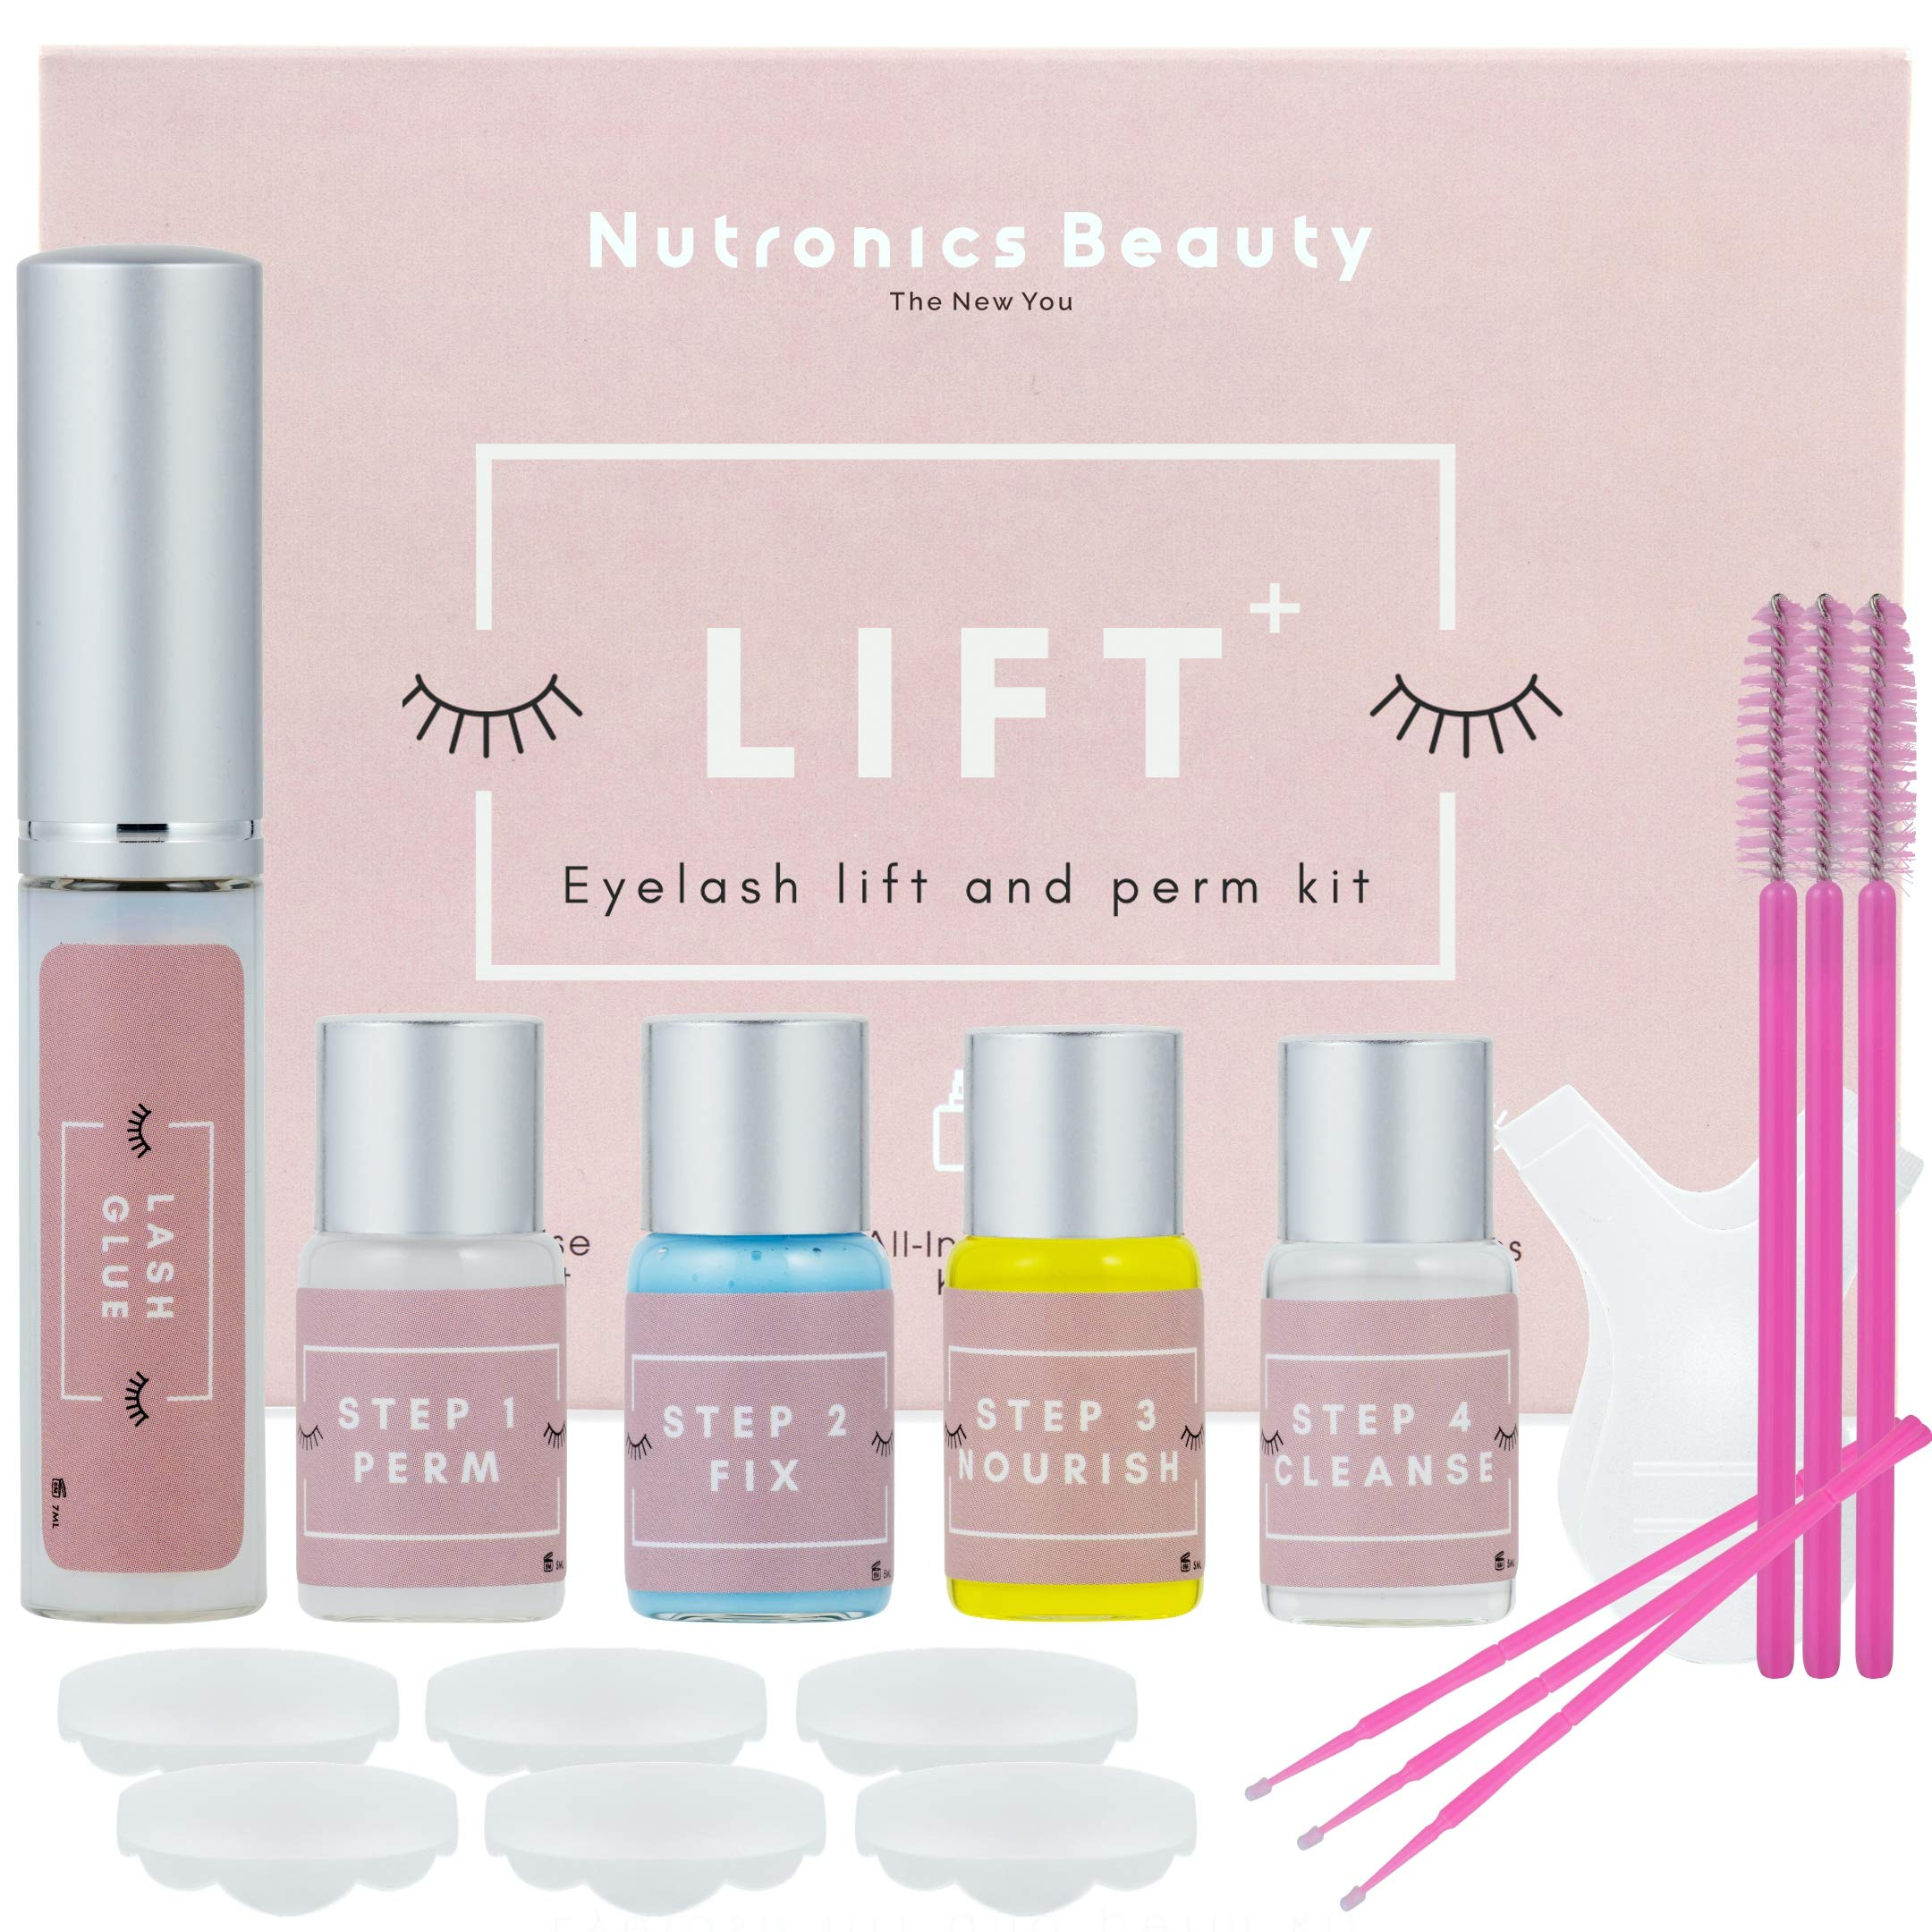 Nutronics Beauty Lash Lift Kit - Premium Home Lash Lift Kit, Eyelash Lifting & Perming, All In One Lash Lifting & Curling - Professional Results From Home With 6-12 Months Of Lifted Lashes Per Box